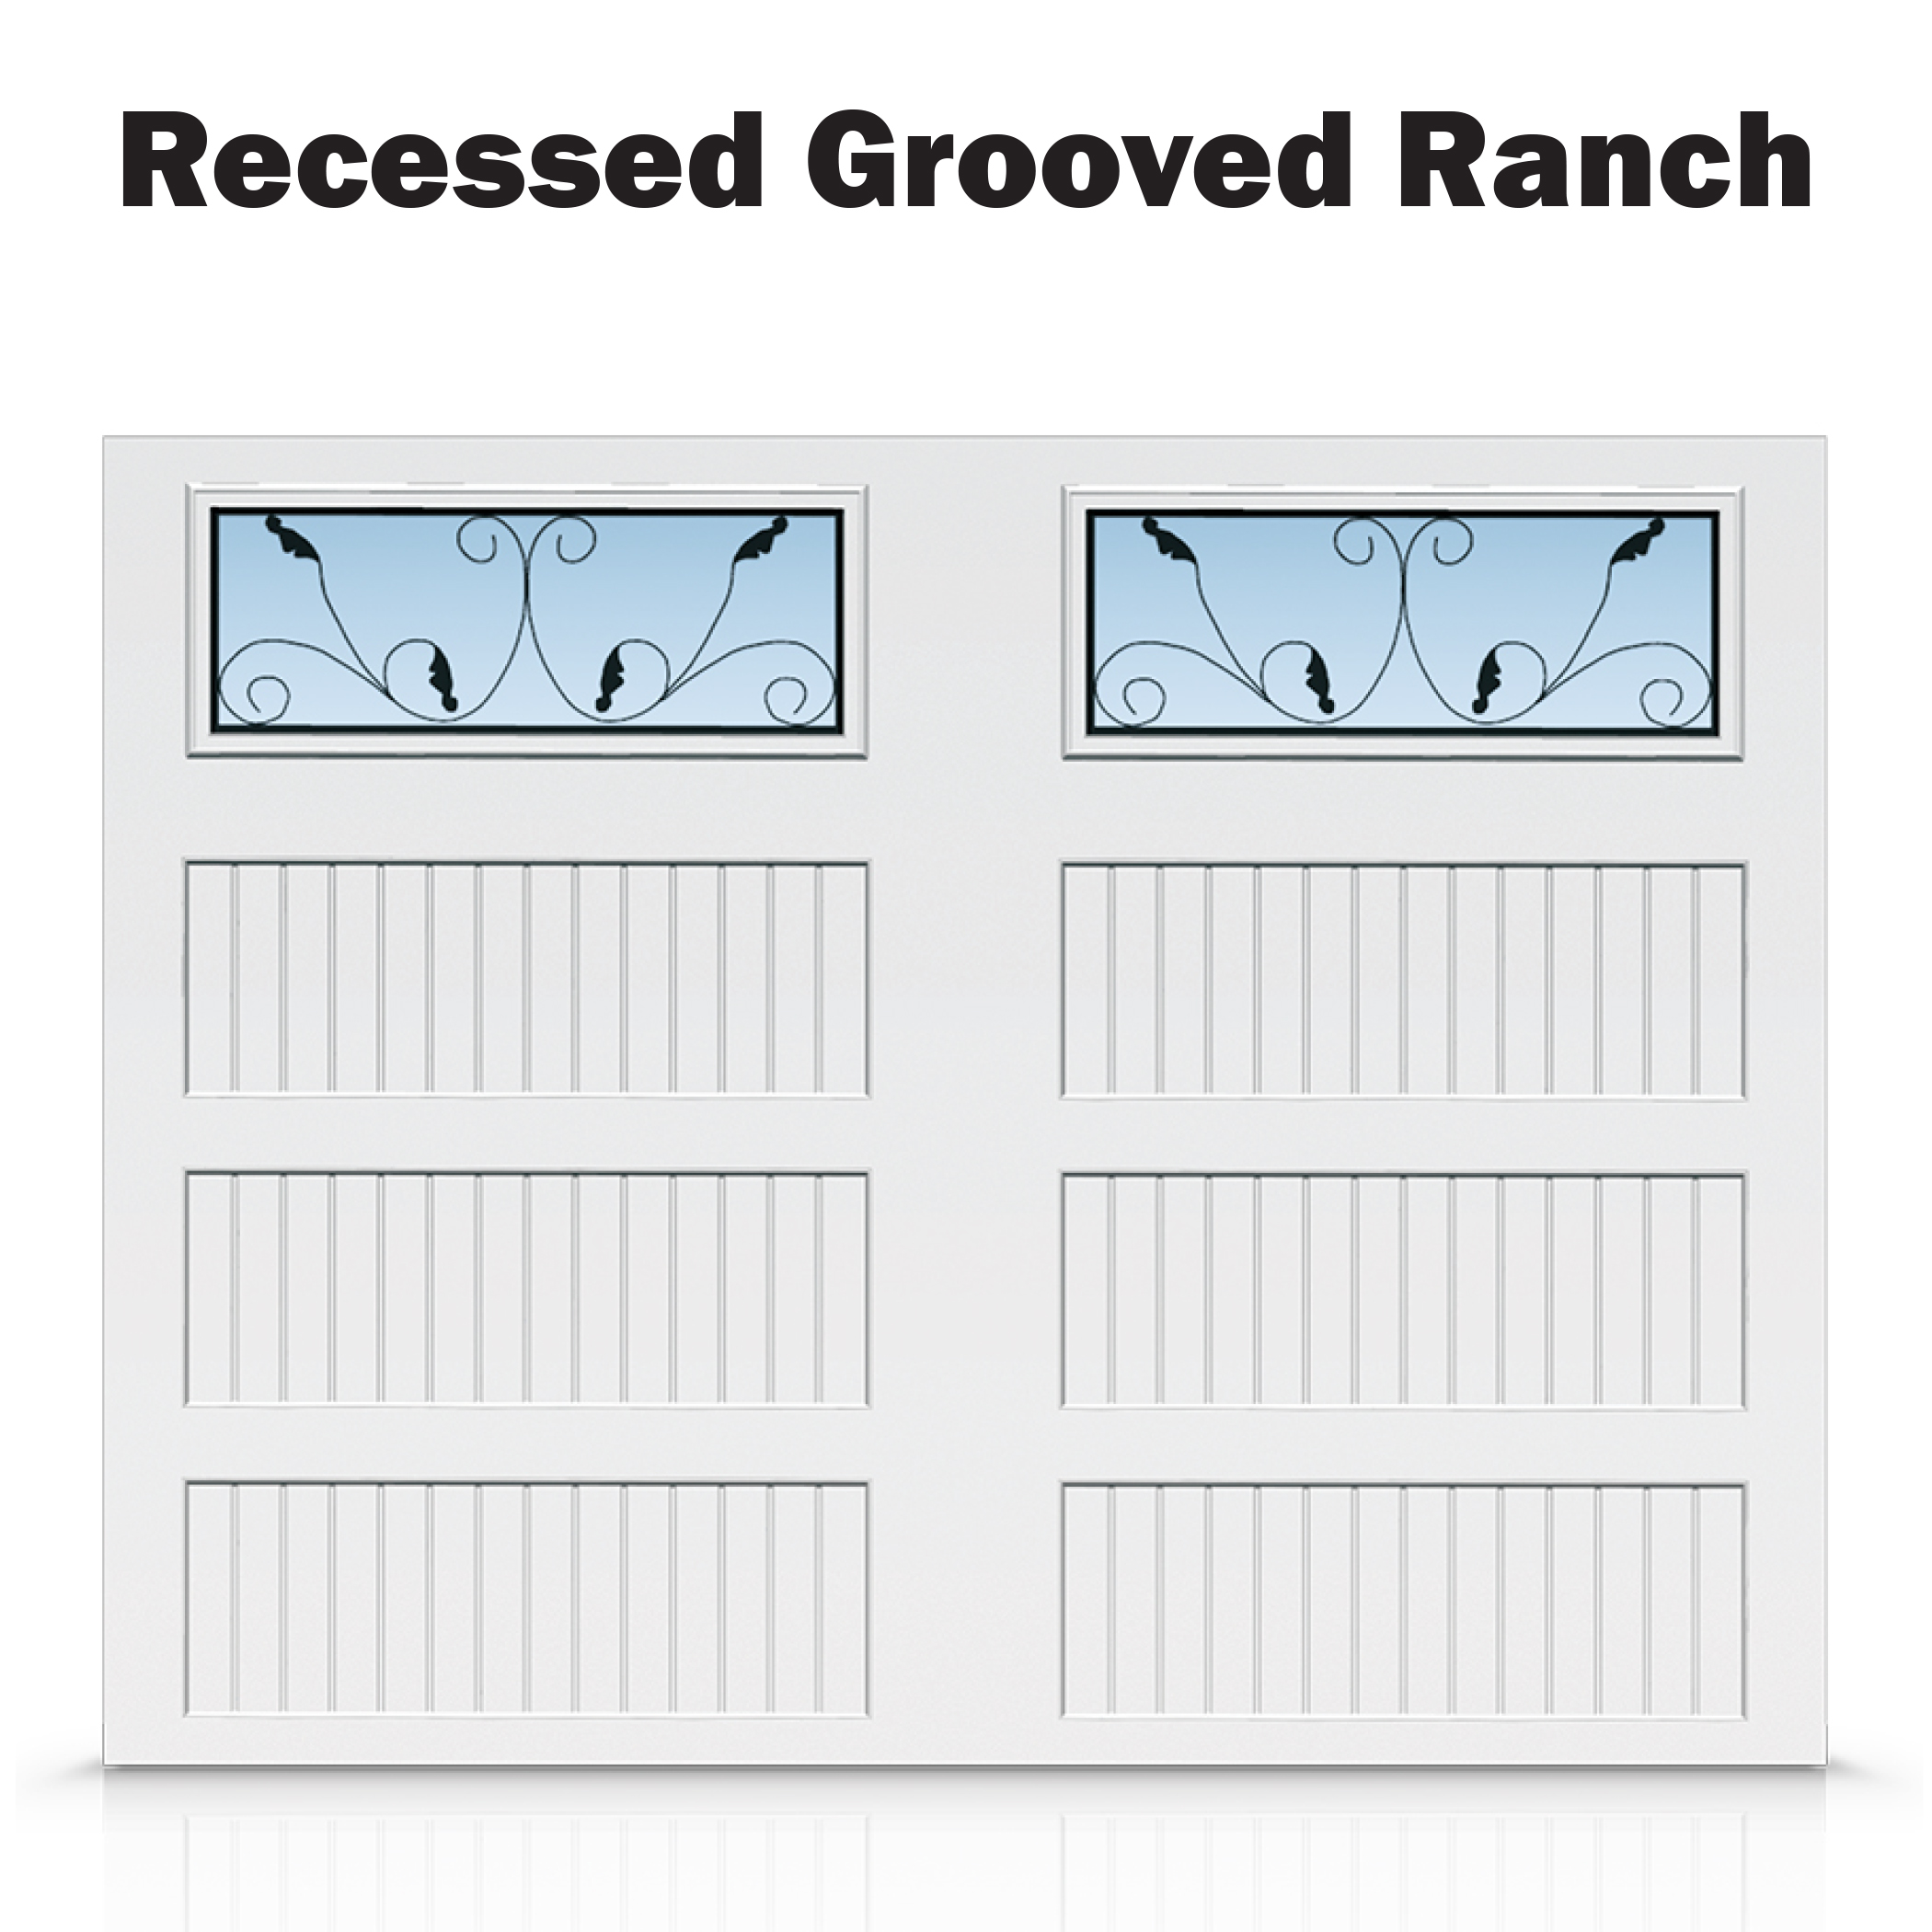 Recessed Grooved Ranch - Grandview.jpg